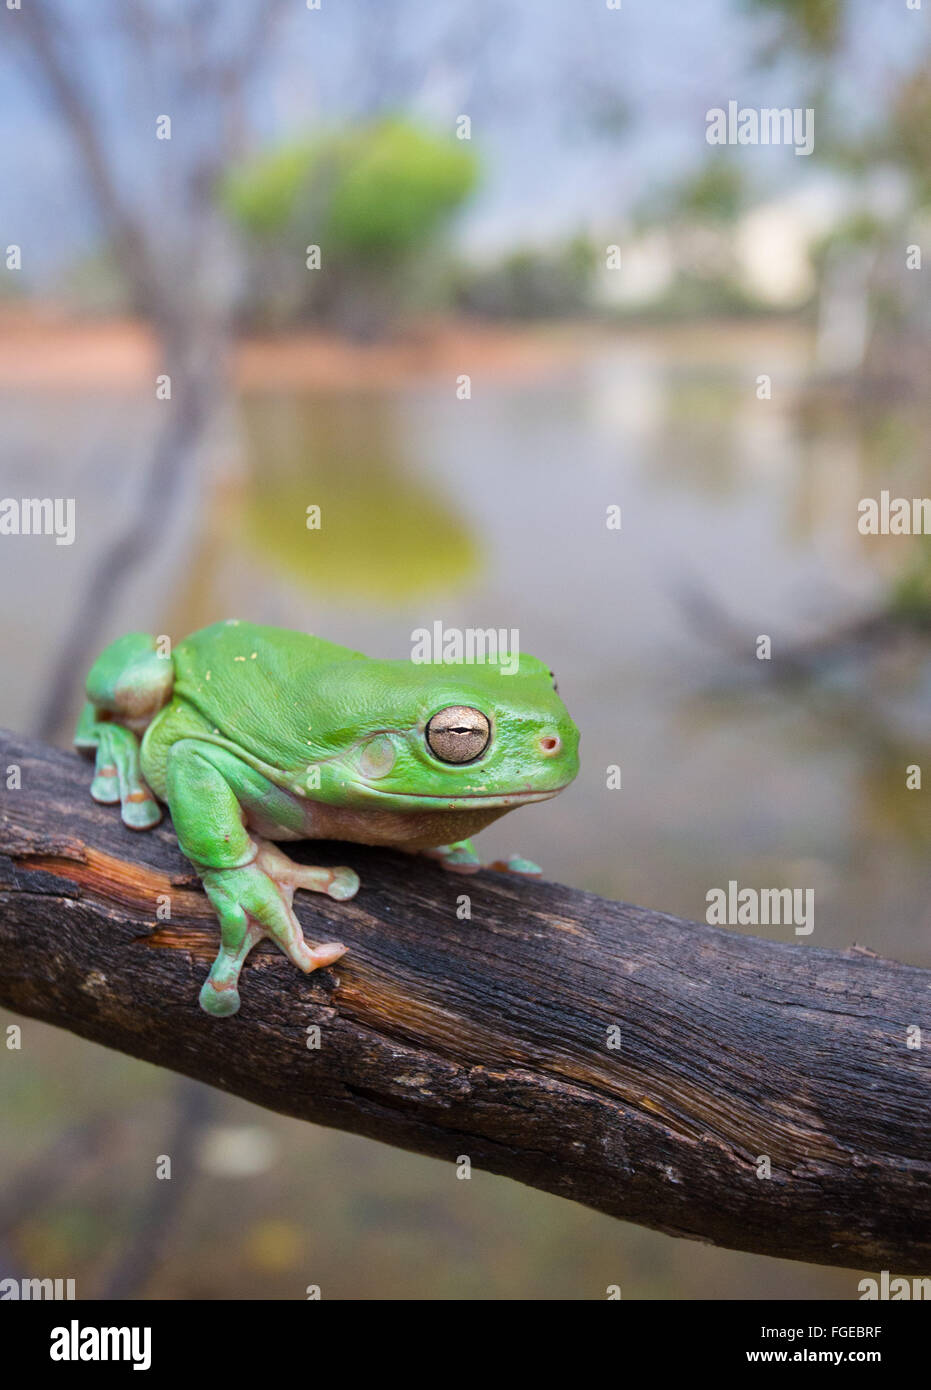 Australian Green Tree Frog (Litoria caerulea) on a branch, with a wetland in the background, Queensland, Australia - Stock Image